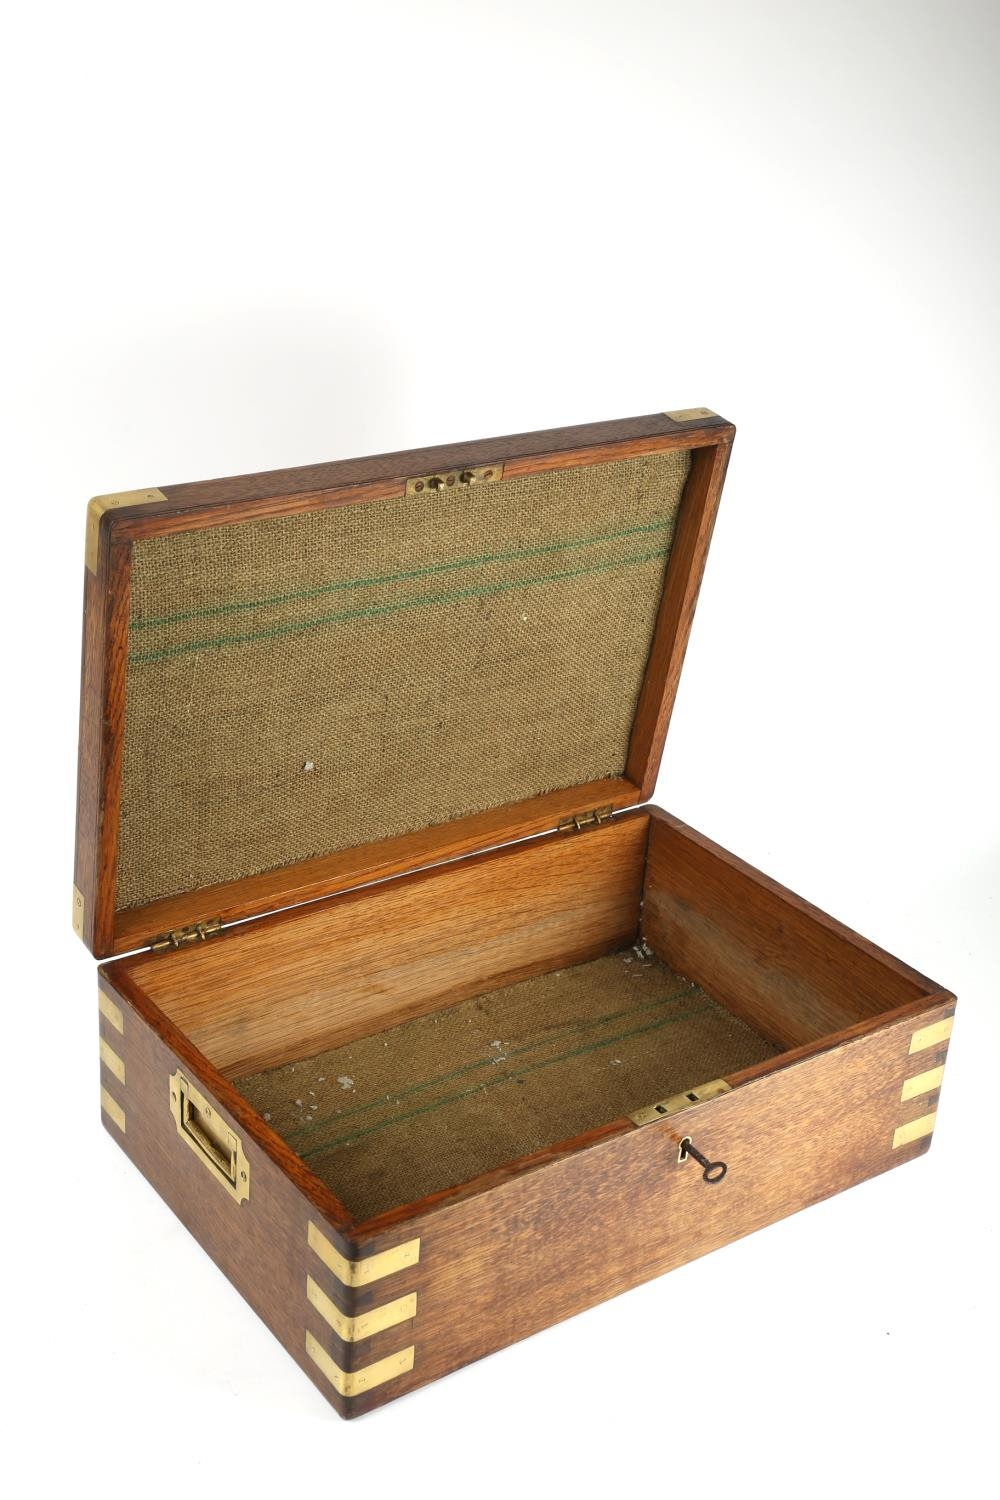 A 19th century brass-bound, oak military box, with recessed handles, the lid inset with a brass - Image 2 of 2